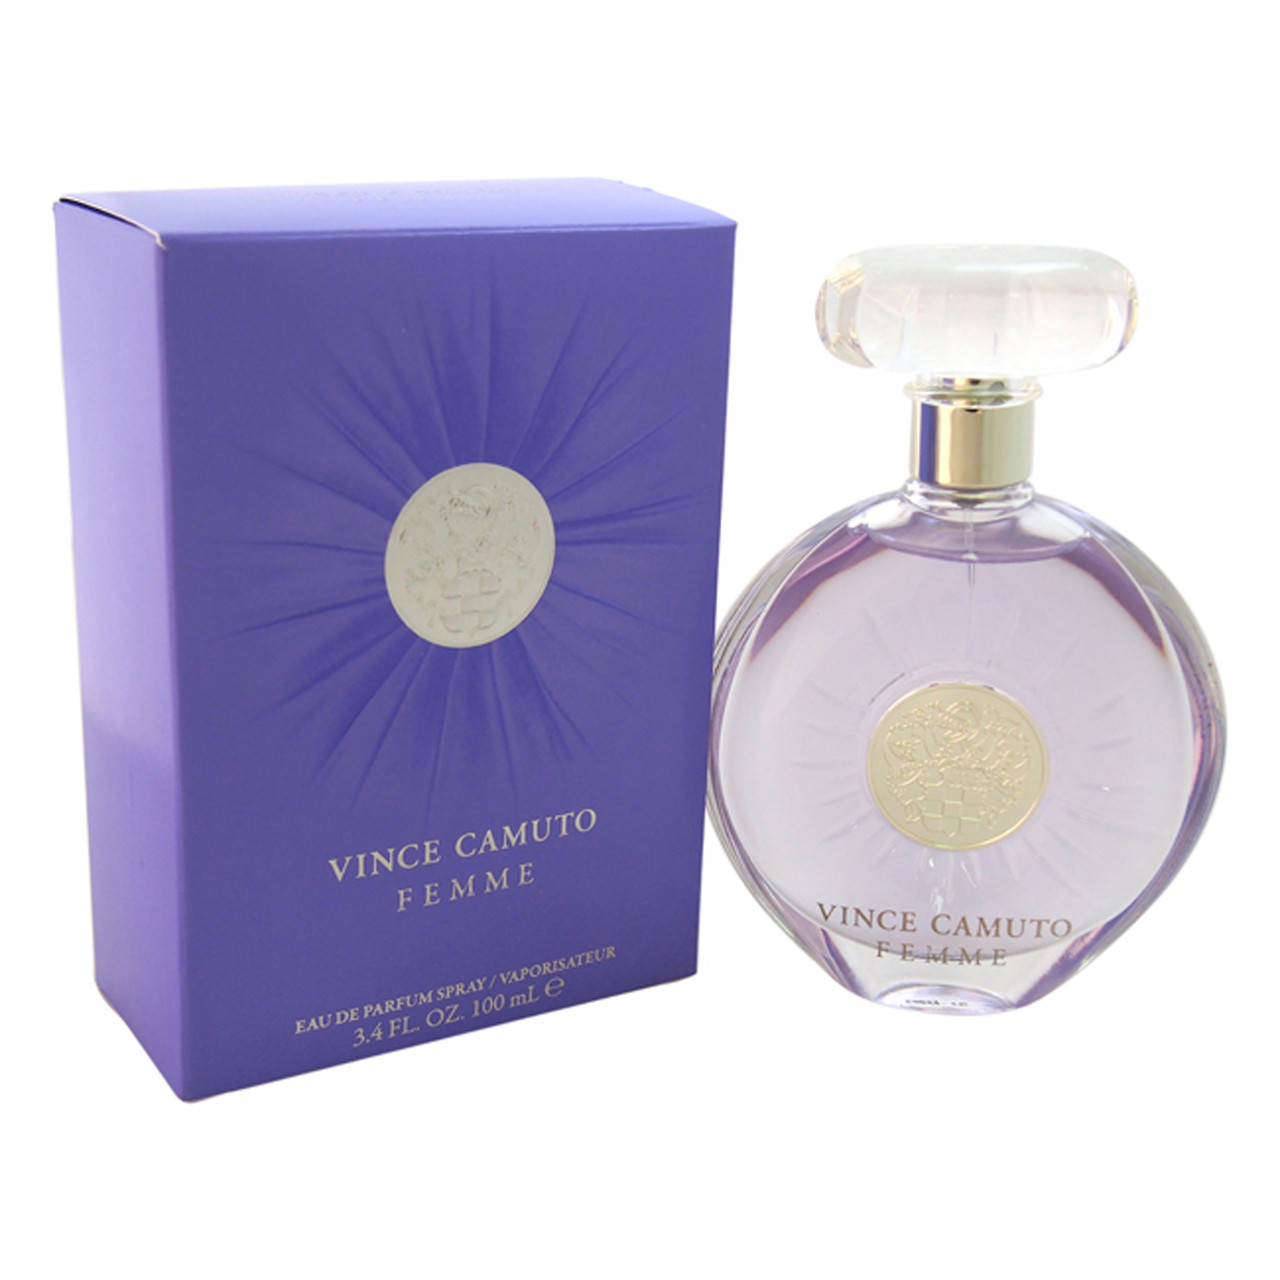 Vince Camuto Femme by Vince Camuto for Women - 3.4 oz EDP Spray